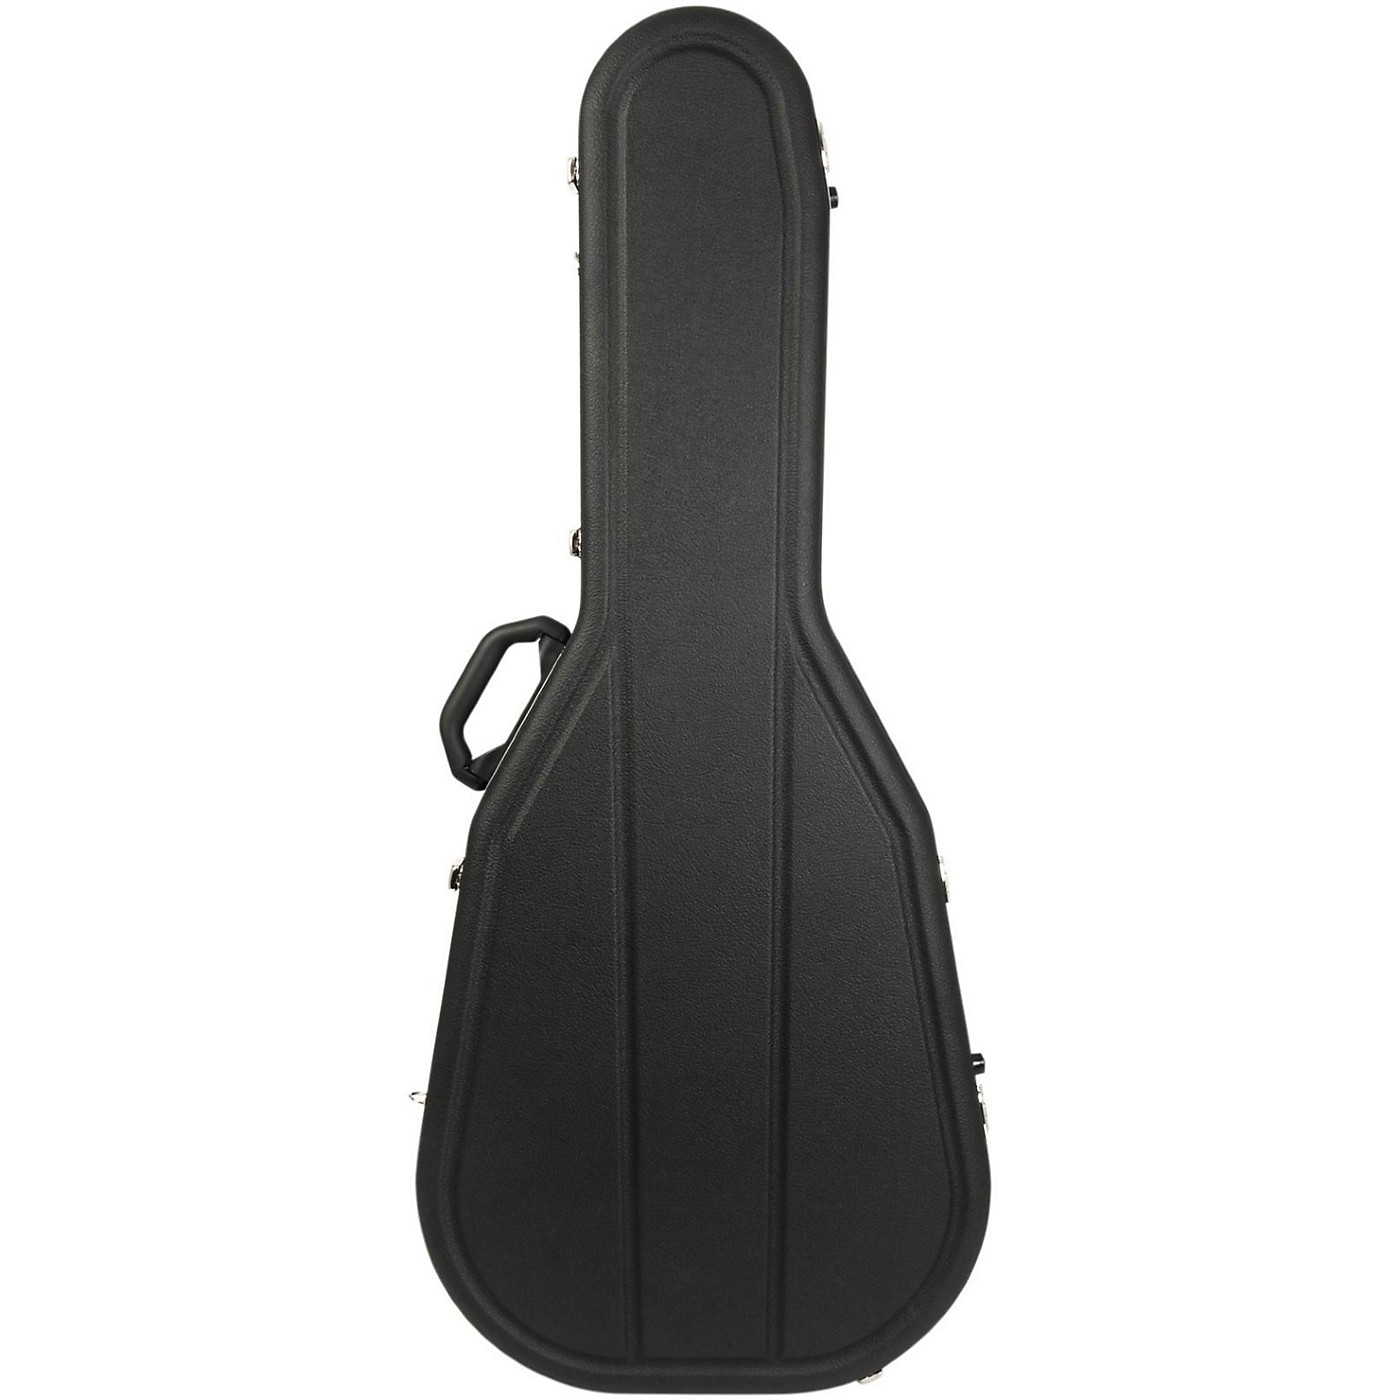 Hiscox Cases Acoustic Guitar Case/Dreadnght Black Shell/Silver Int-Pro II thumbnail